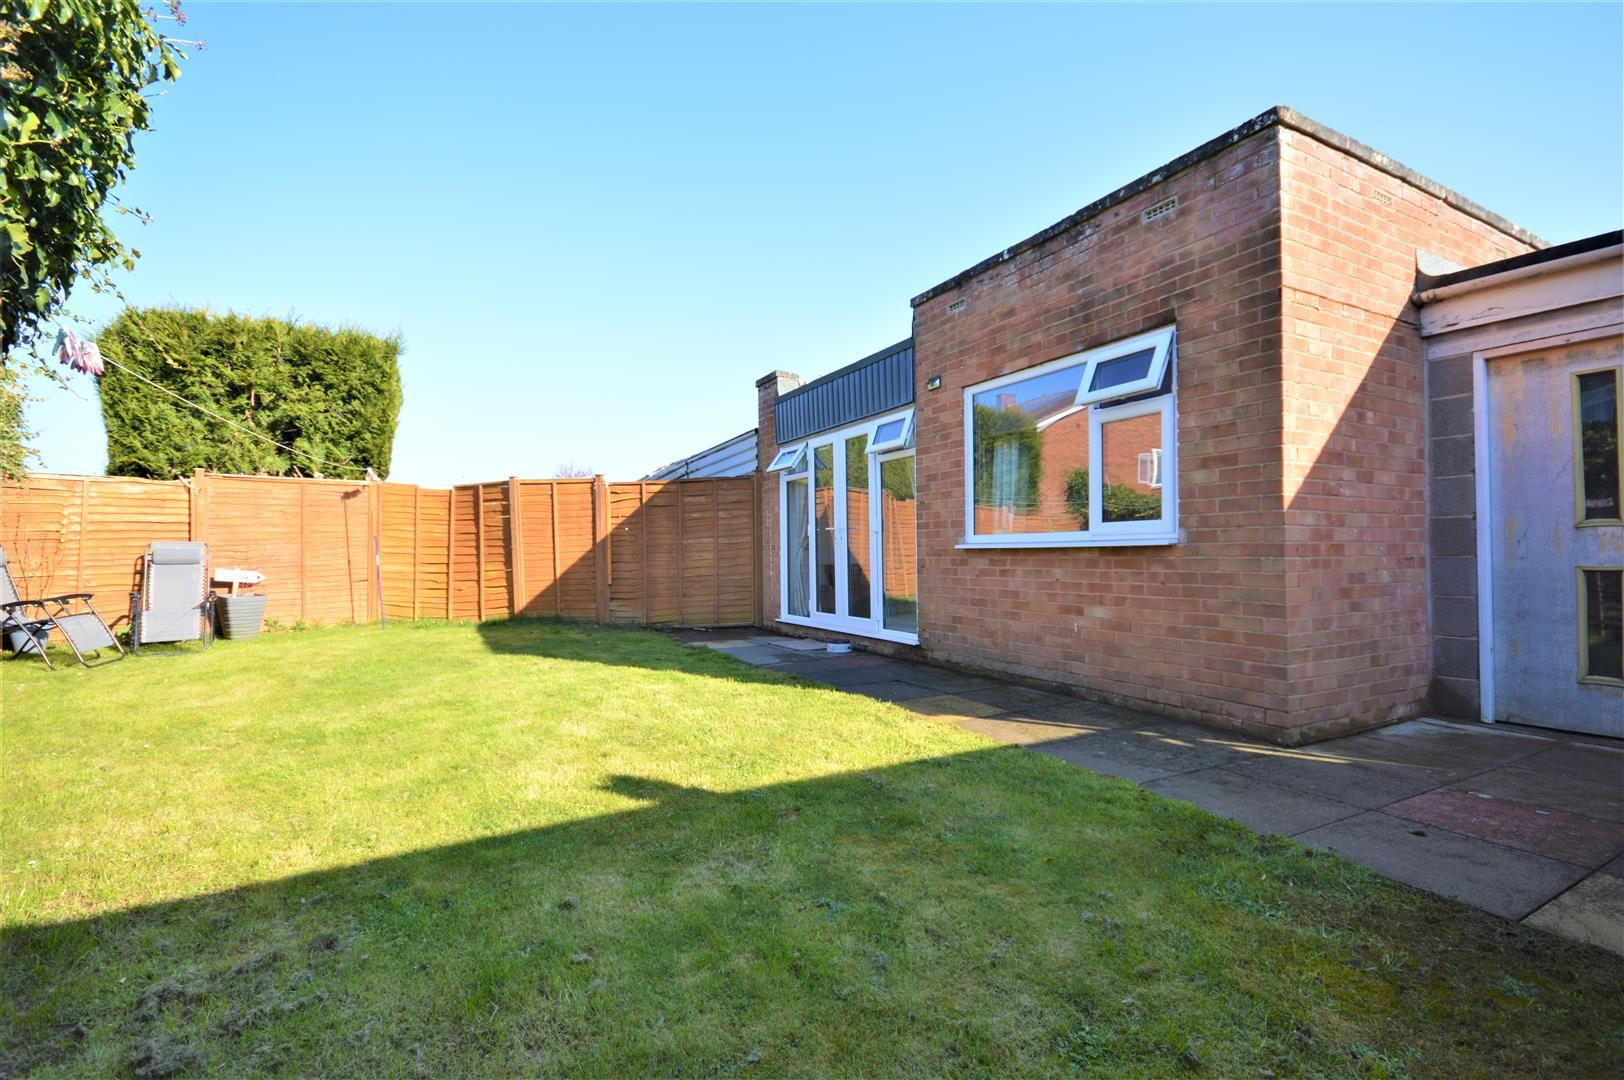 2 bed semi-detached-bungalow for sale in Marden 9